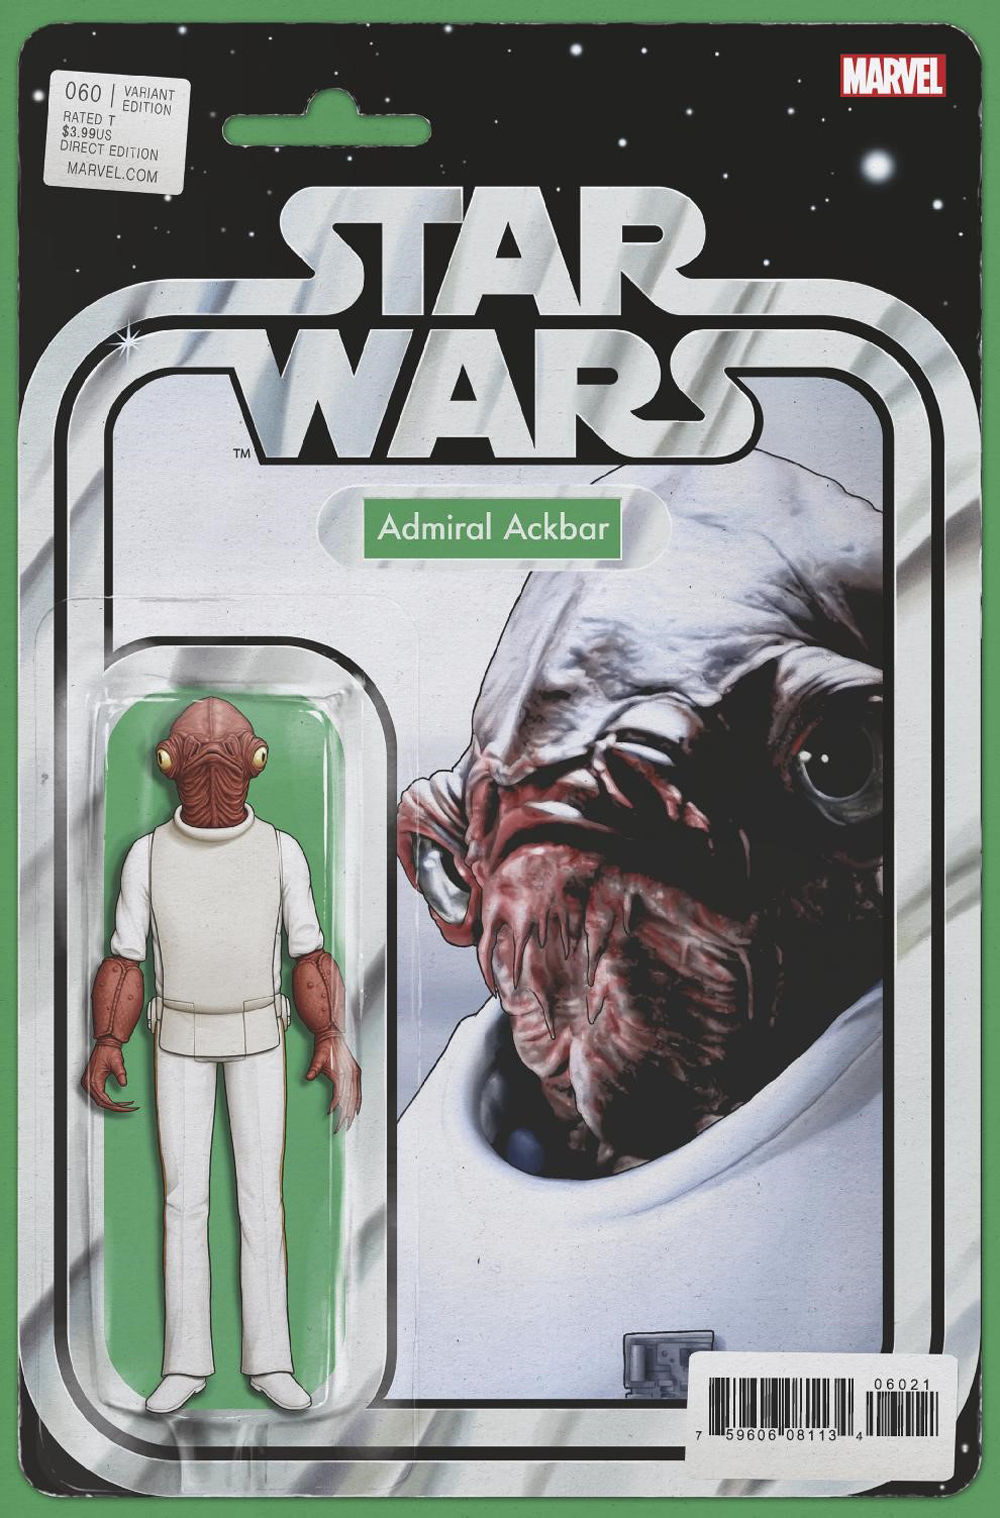 STAR WARS #60 CHRISTOPHER ACTION FIGURE VAR